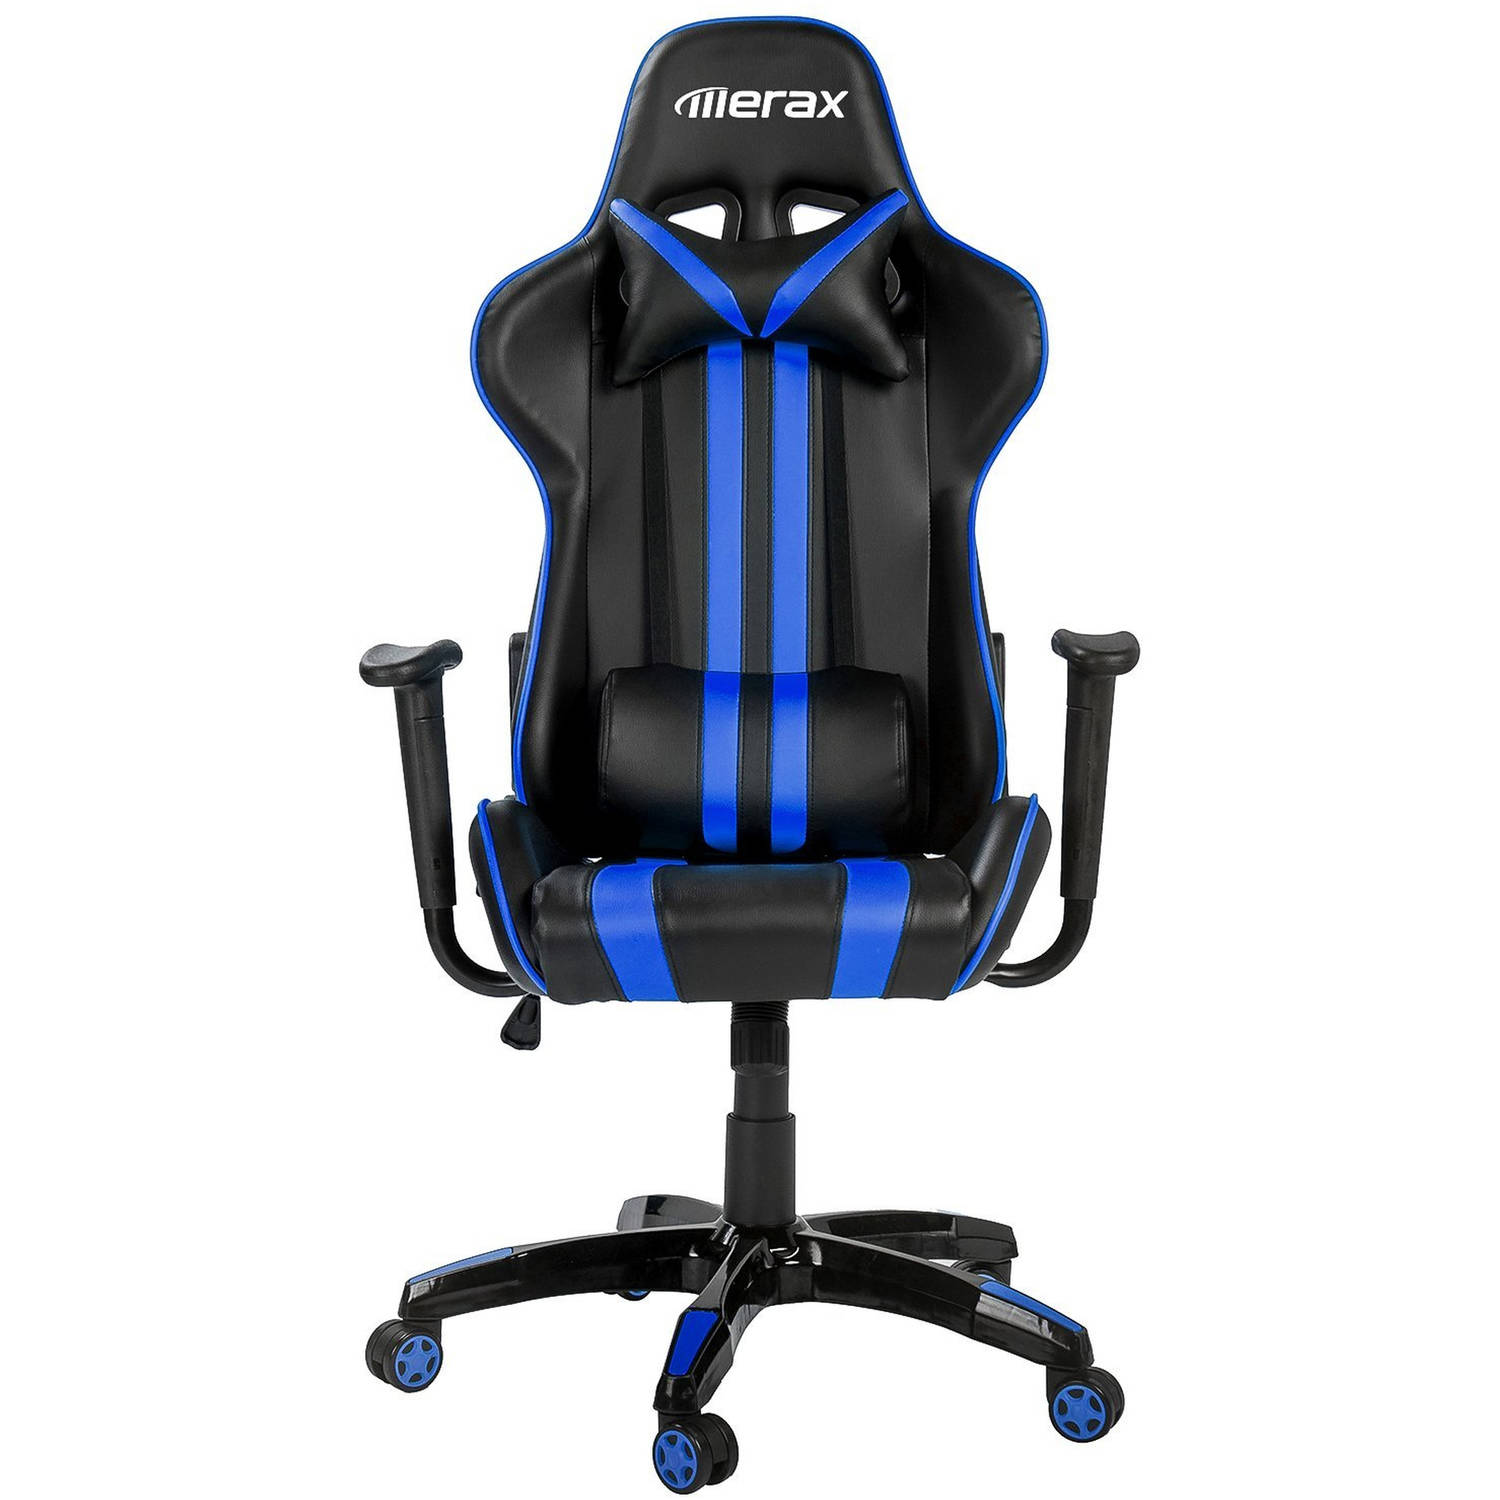 gaming reclining sihao height style adjustment executive office chair ergonomic mophorn design from high seat product racing and back rocker